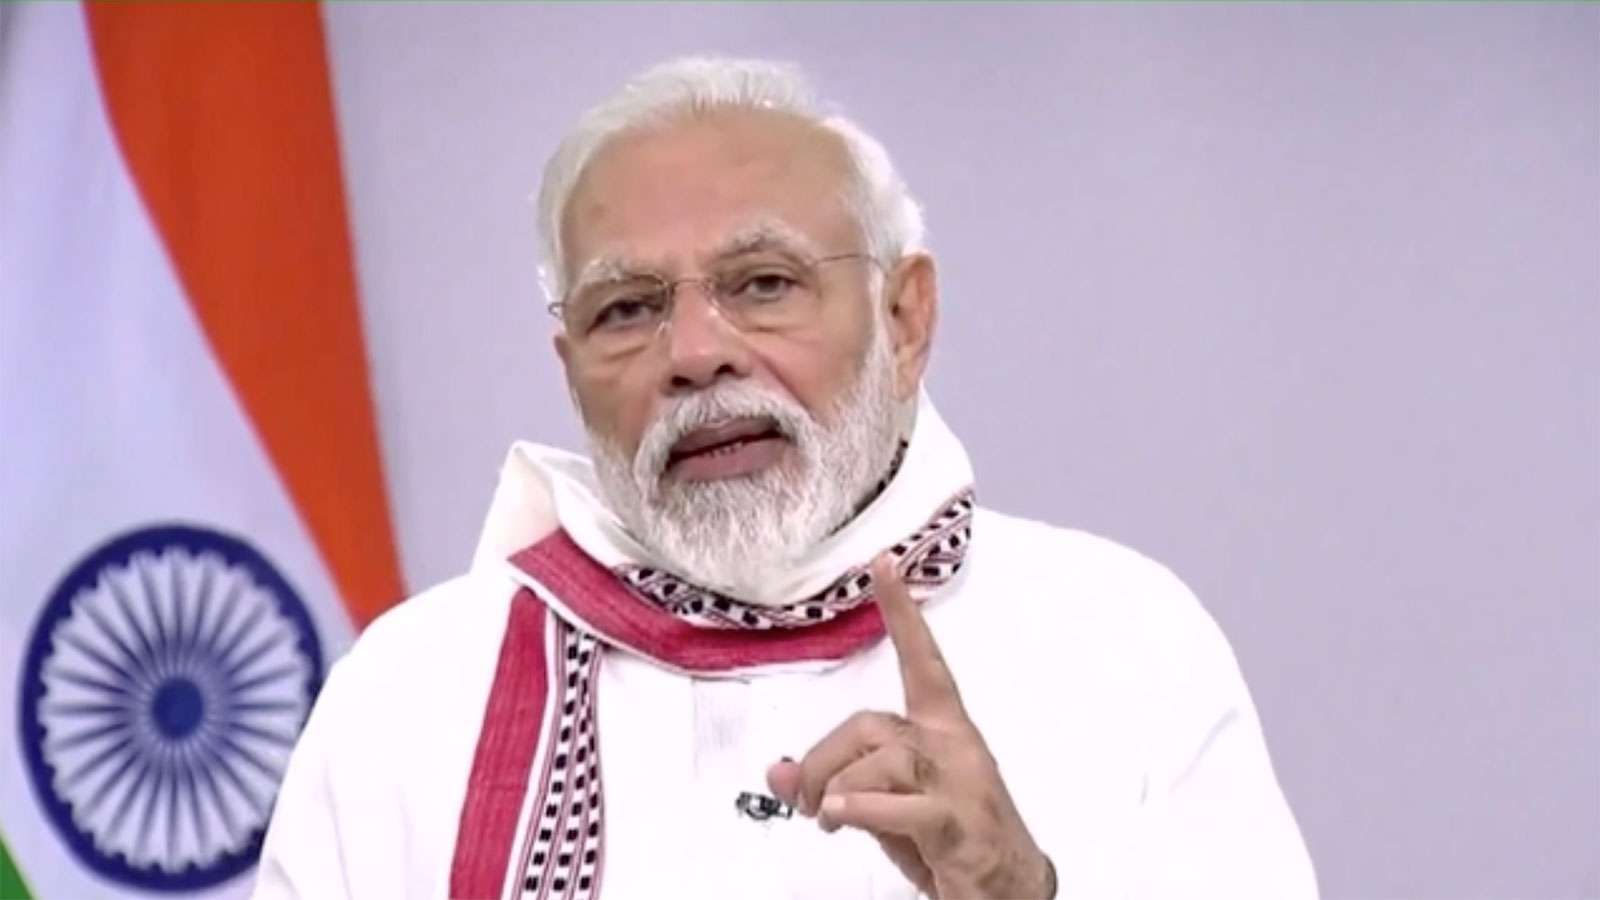 India's Prime Minister Narendra Modi addresses the nation in a pre-recorded message on Tuesday.